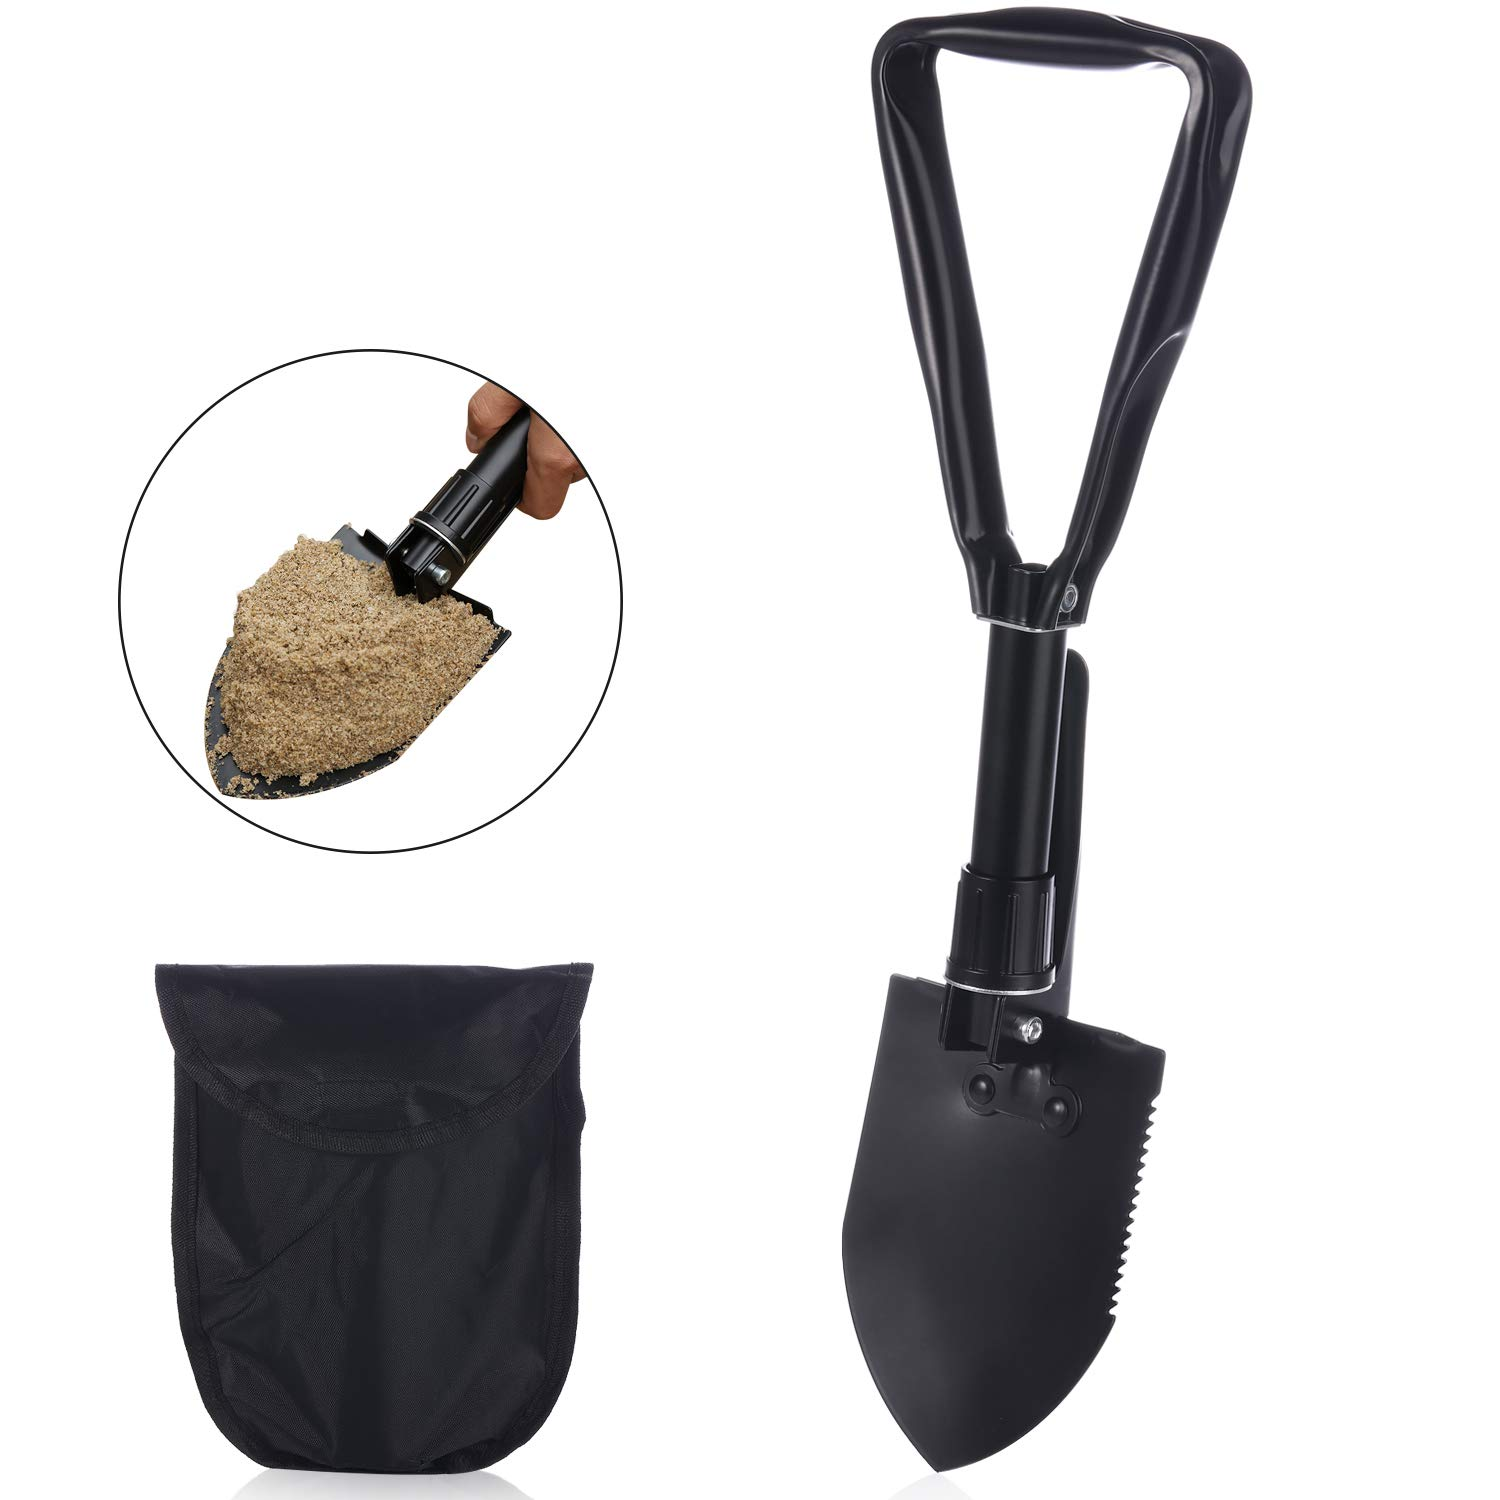 Elehealthy Tri-fold Folding Shovel, Military Shovel Survival Gear with Nylon Carrying Pouch, Mini, Lightweight and Compact Entrenching Tool for Camping Hiking Backpacking Fishing Gardening